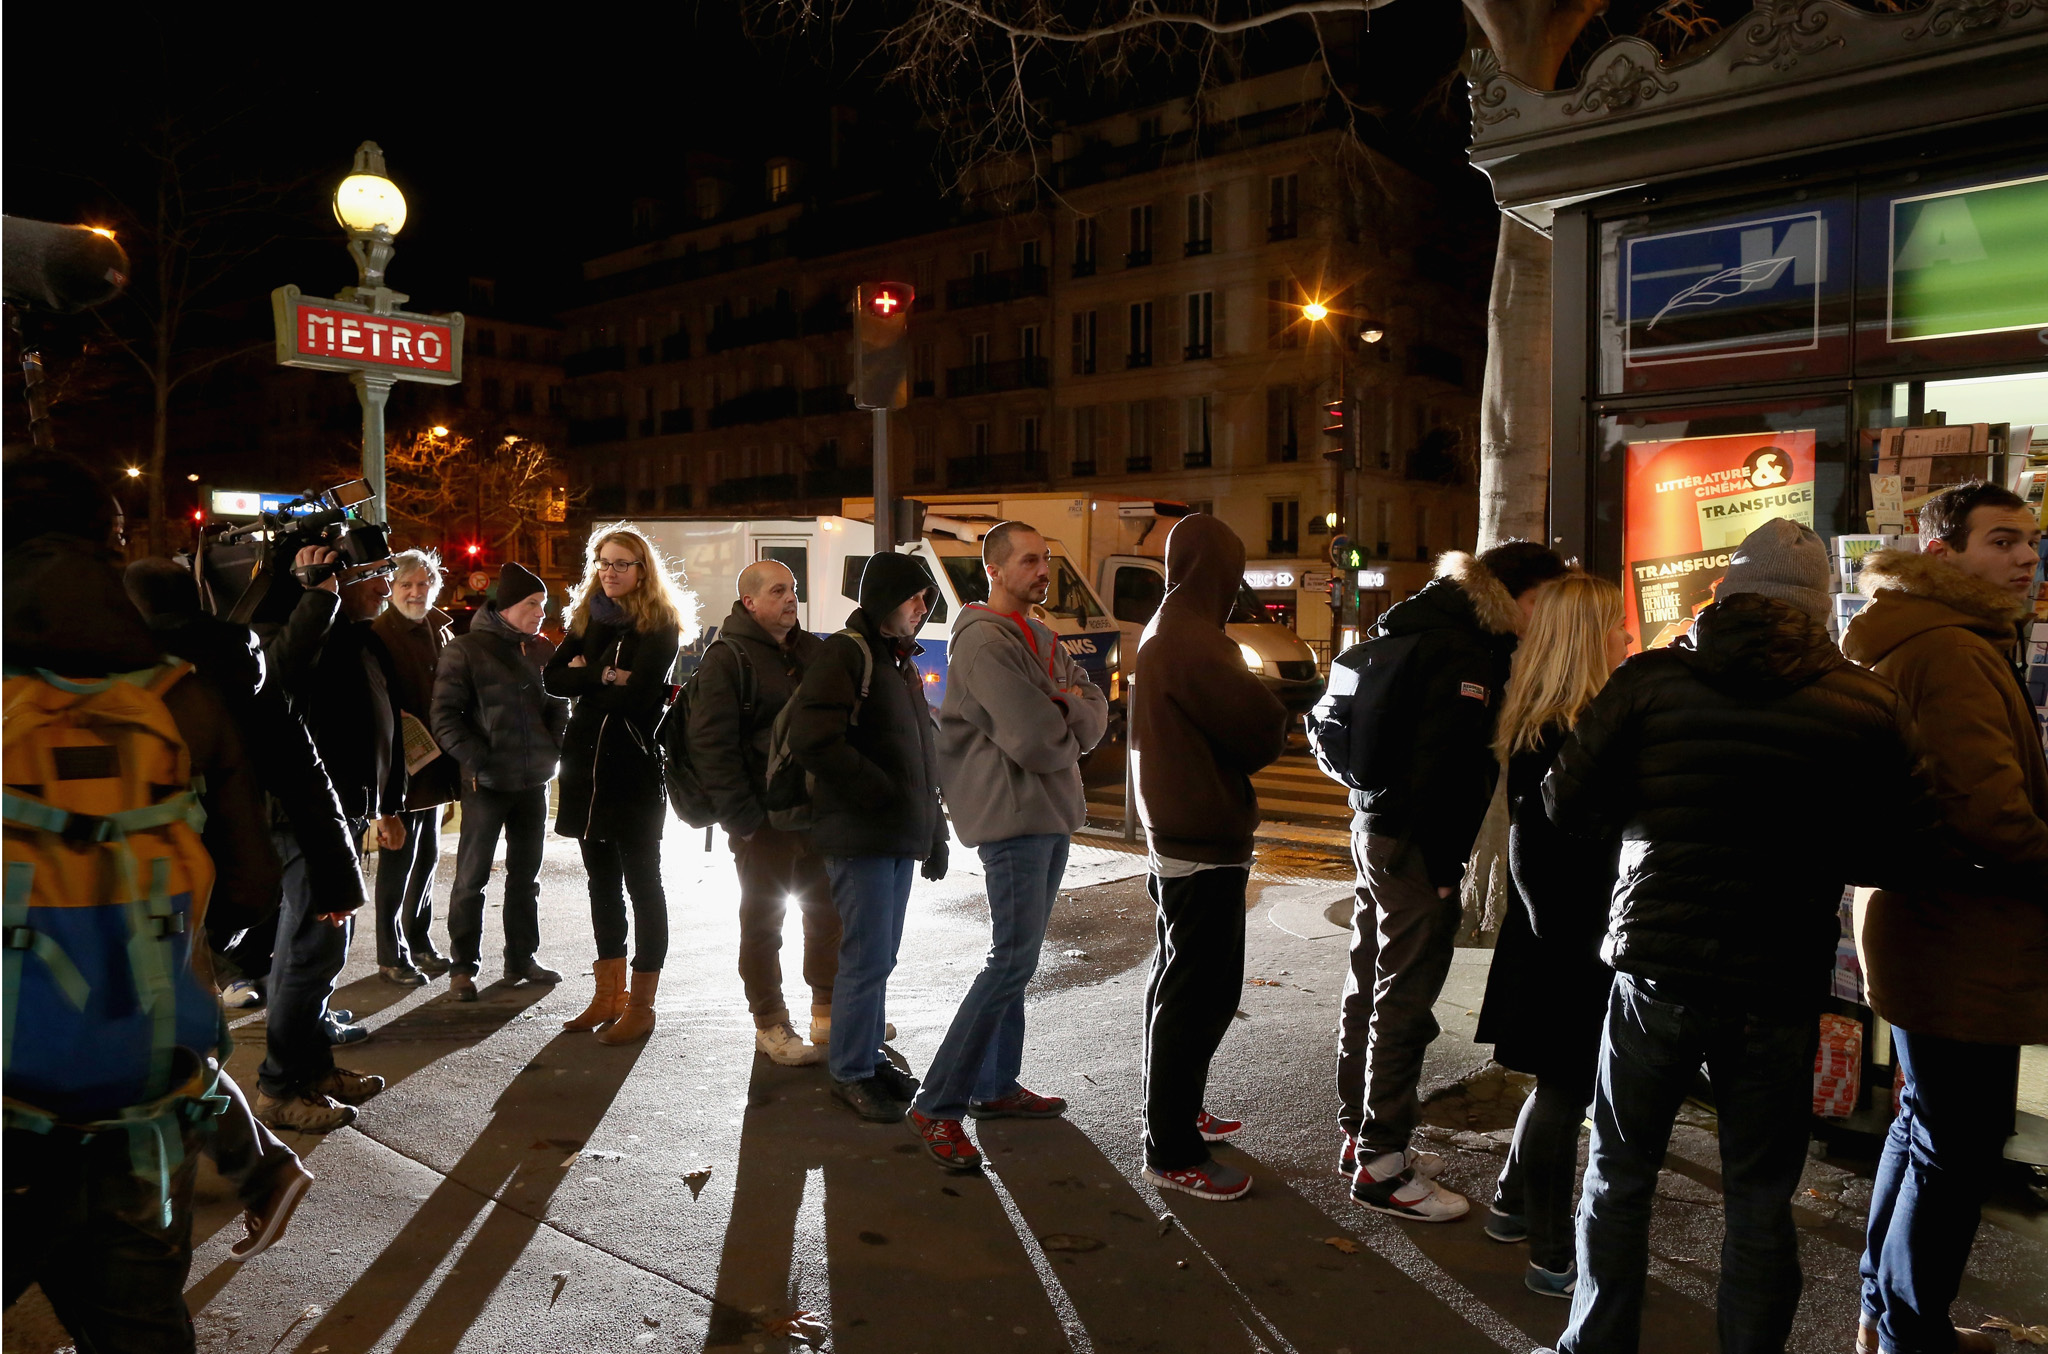 Parisians queue at a newspaper kiosk to get their copies of the latest edition of Charlie Hebdo magazine on January 14, 2015 in Paris, France. Three million copies of the controversial magazine have been printed  in the wake of last week's terrorist attacks.